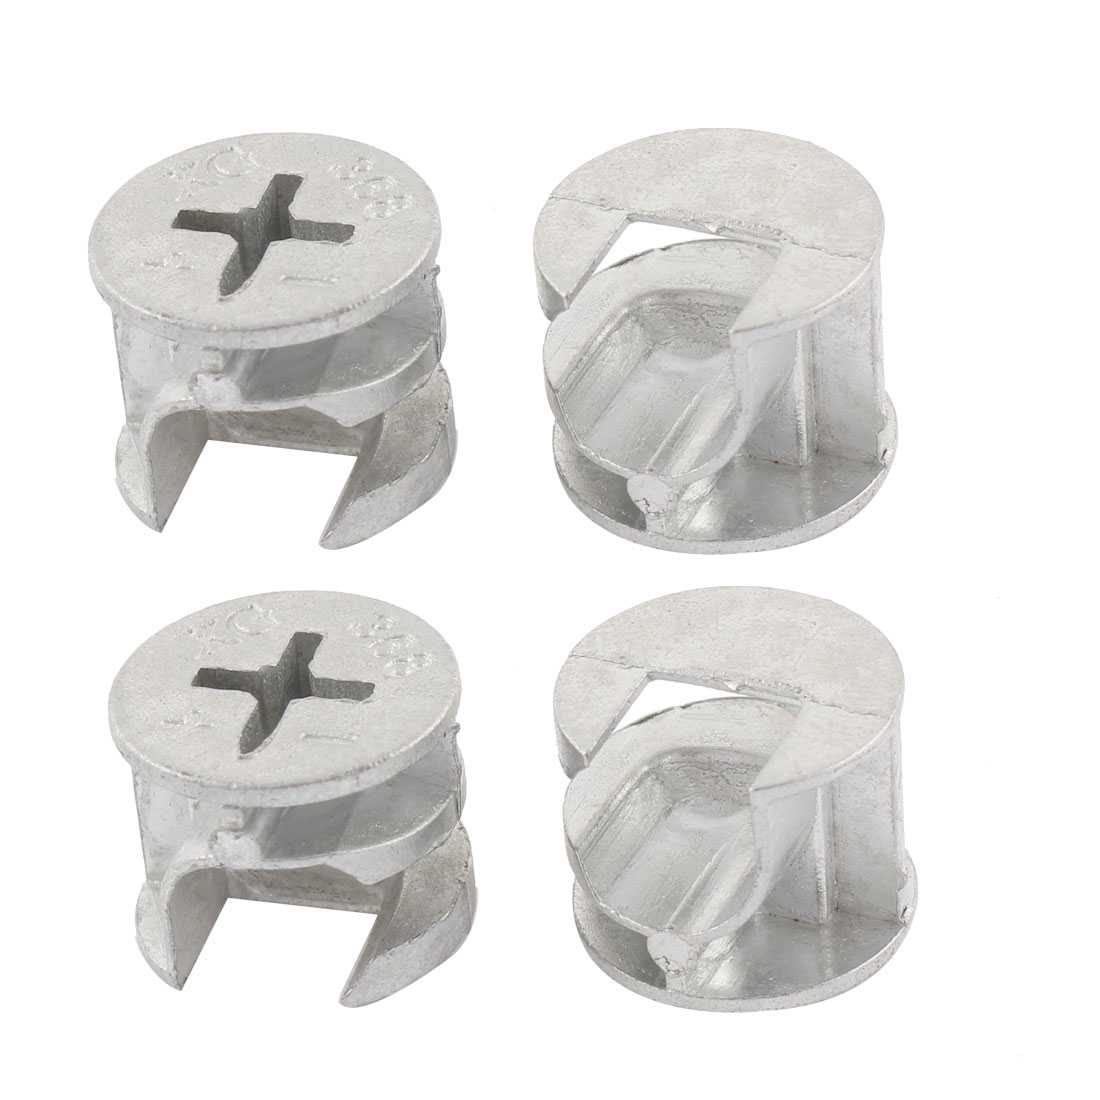 15mm Dia. Cross Head Metal Cabinet Furniture Connect Cam Fittings Silver Tone 4Pcs